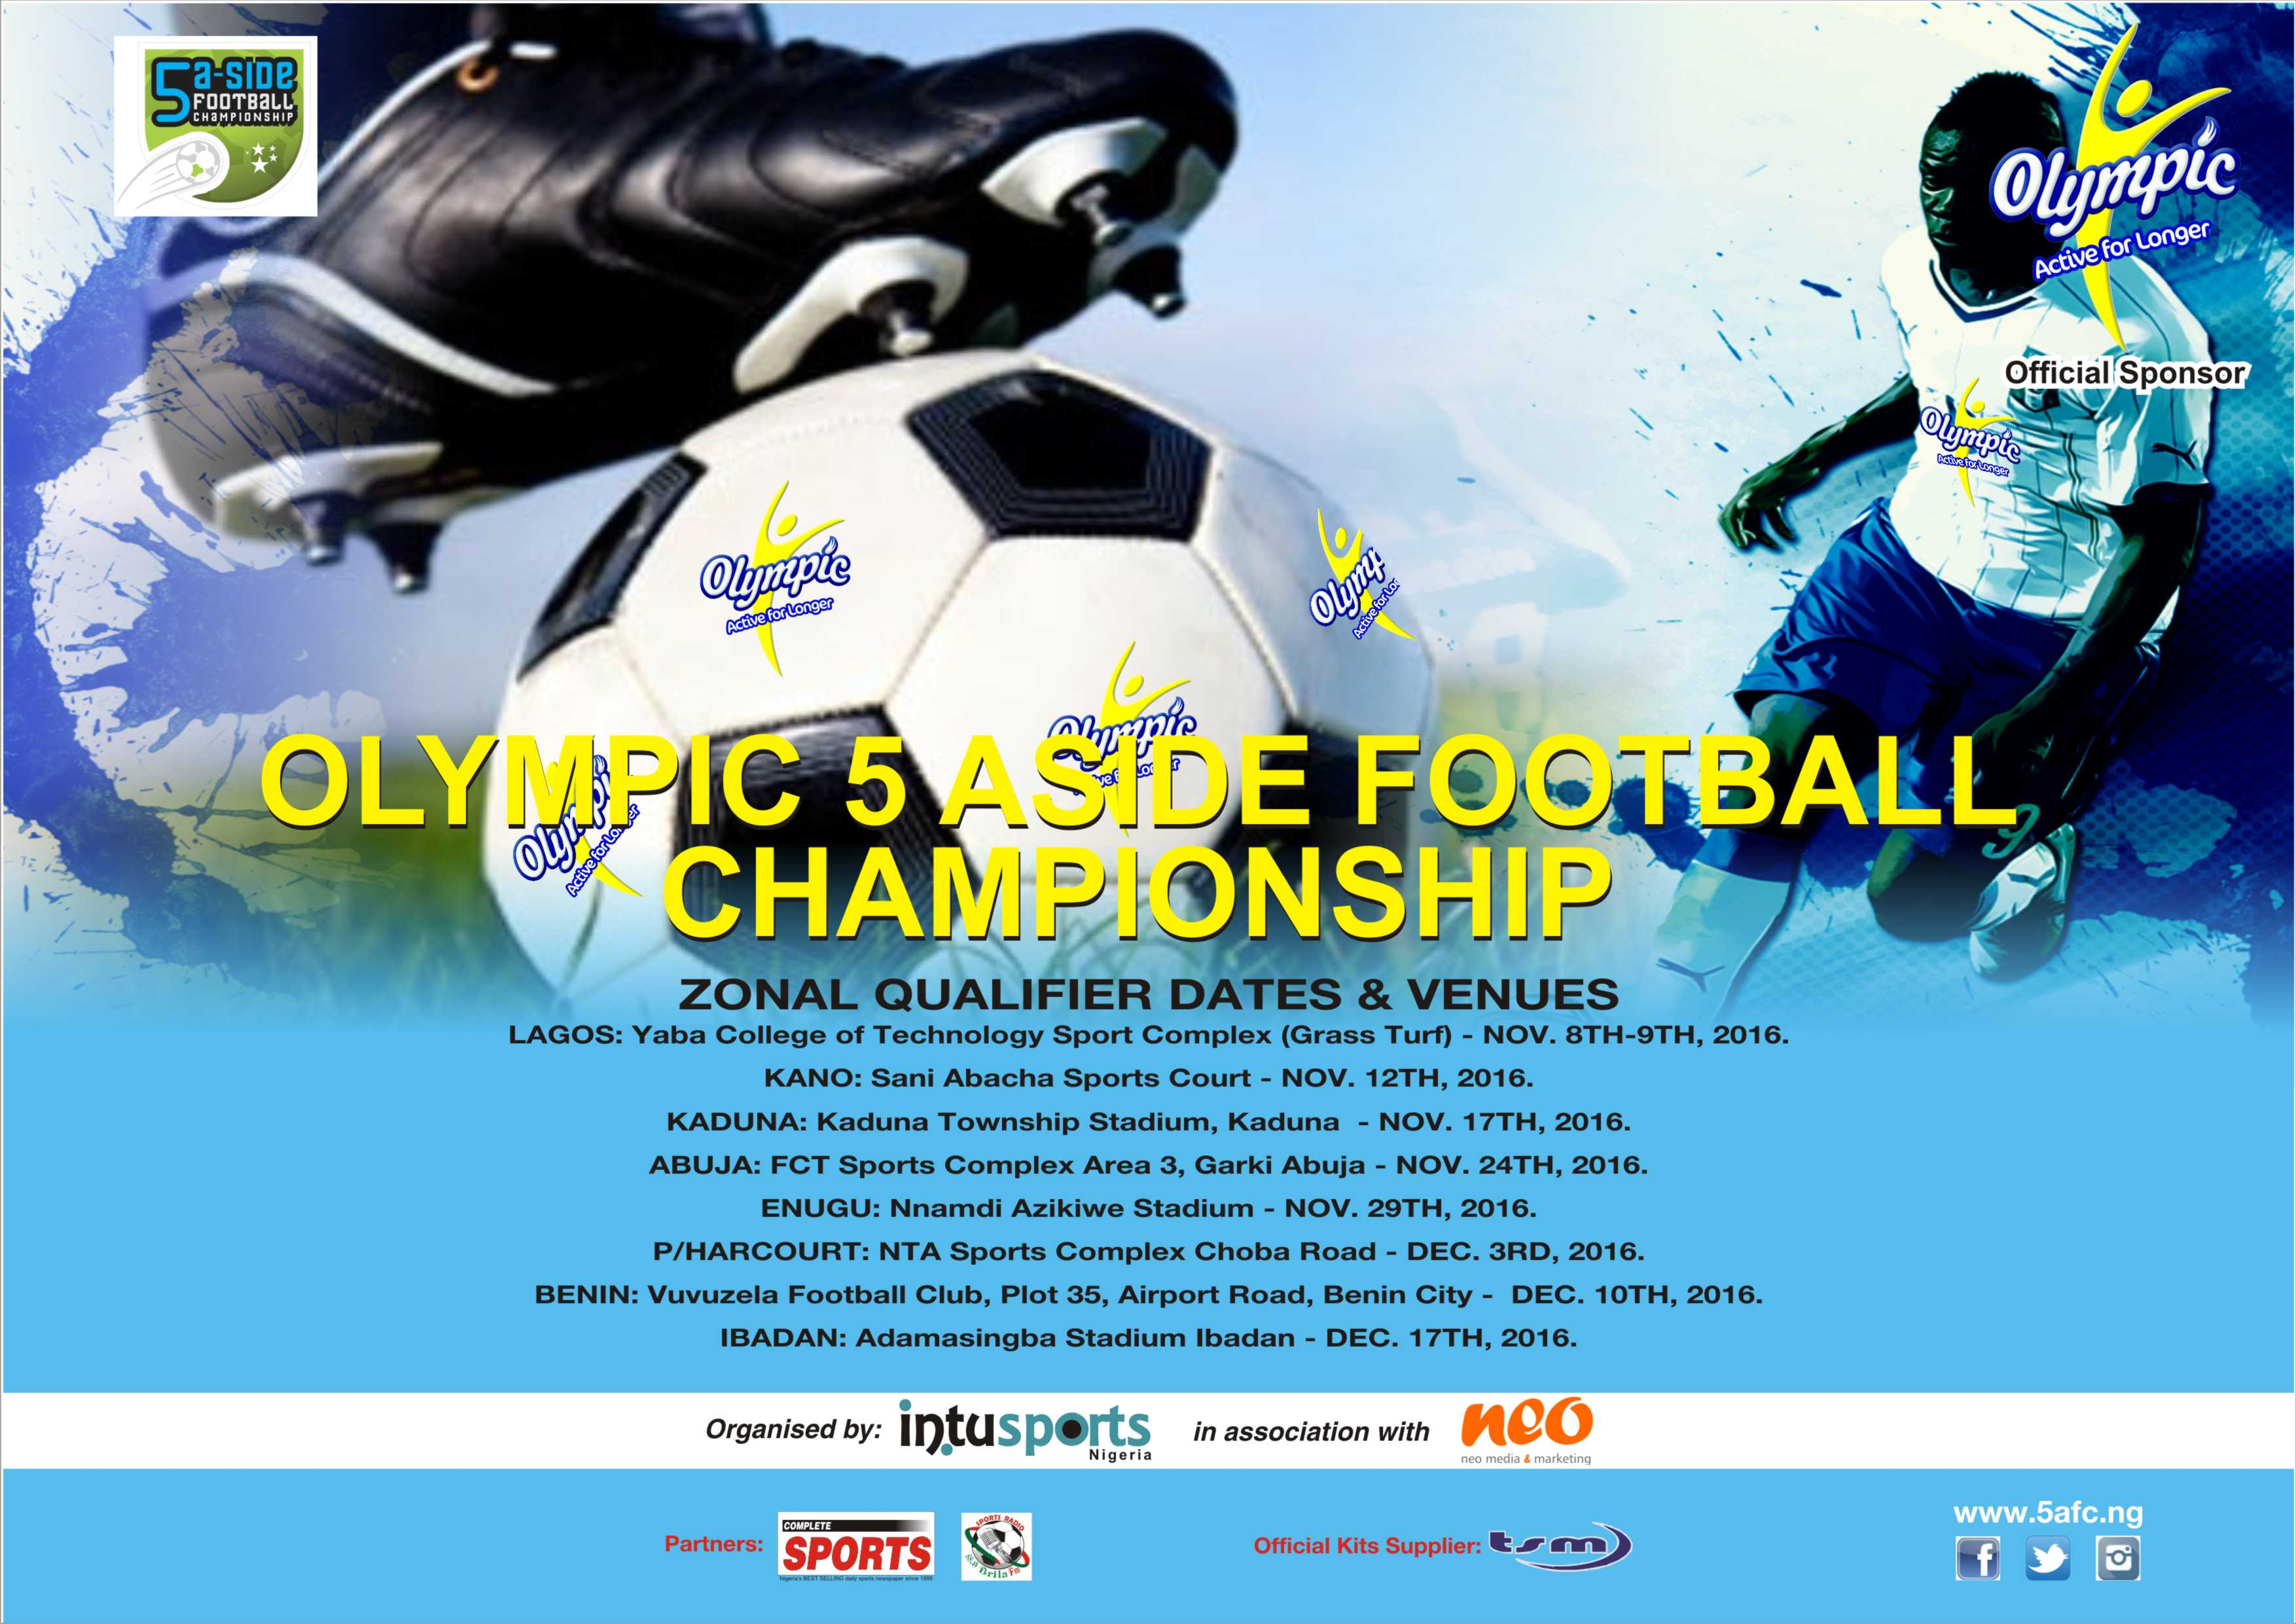 2016 Olympic 5-A-Side Football Championship Gets Dates, Venues